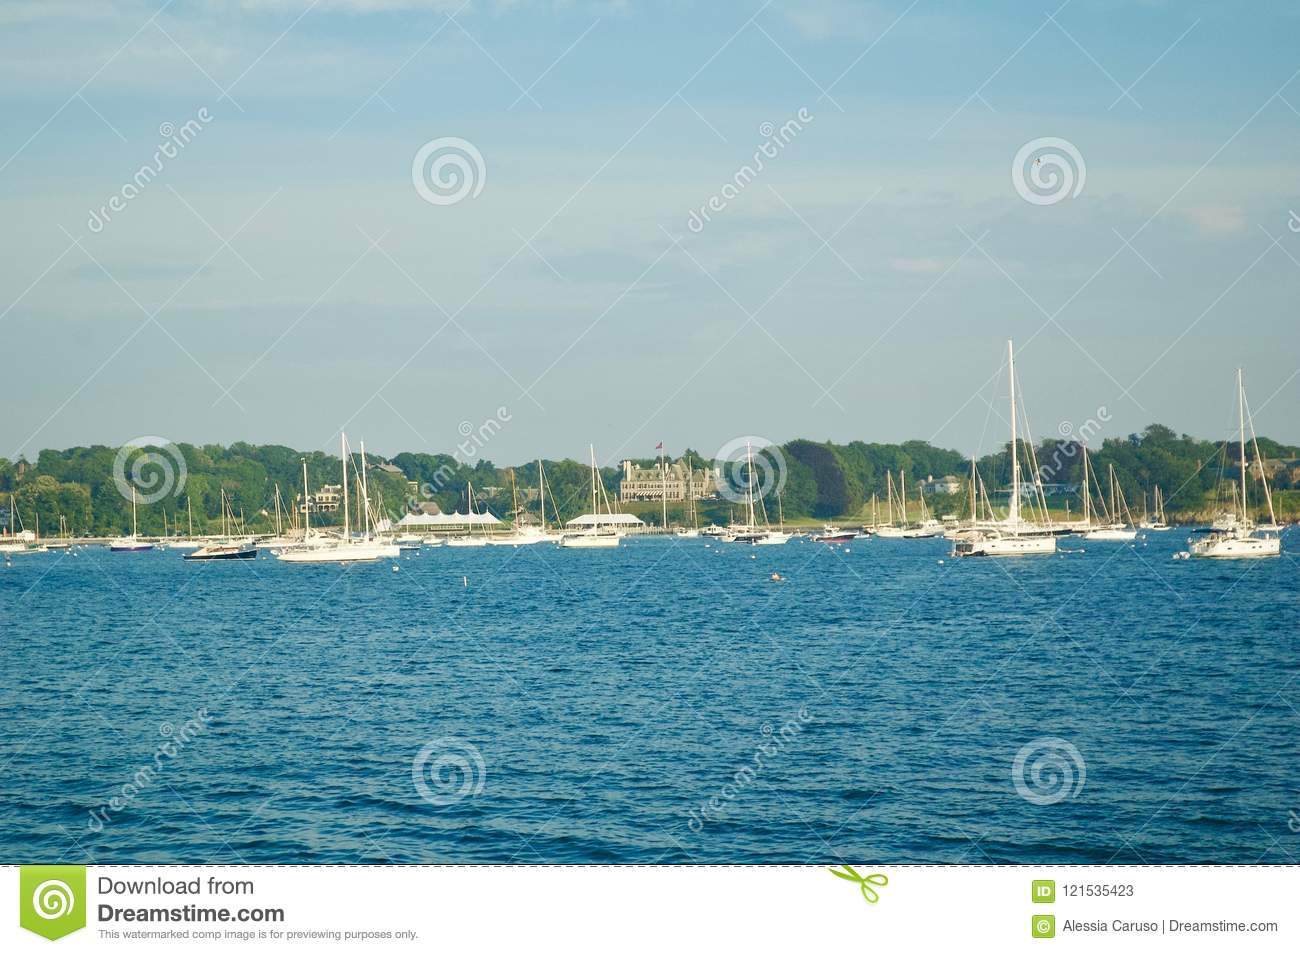 Scenic Views of Newport Marina in Newport, Rhode Island.